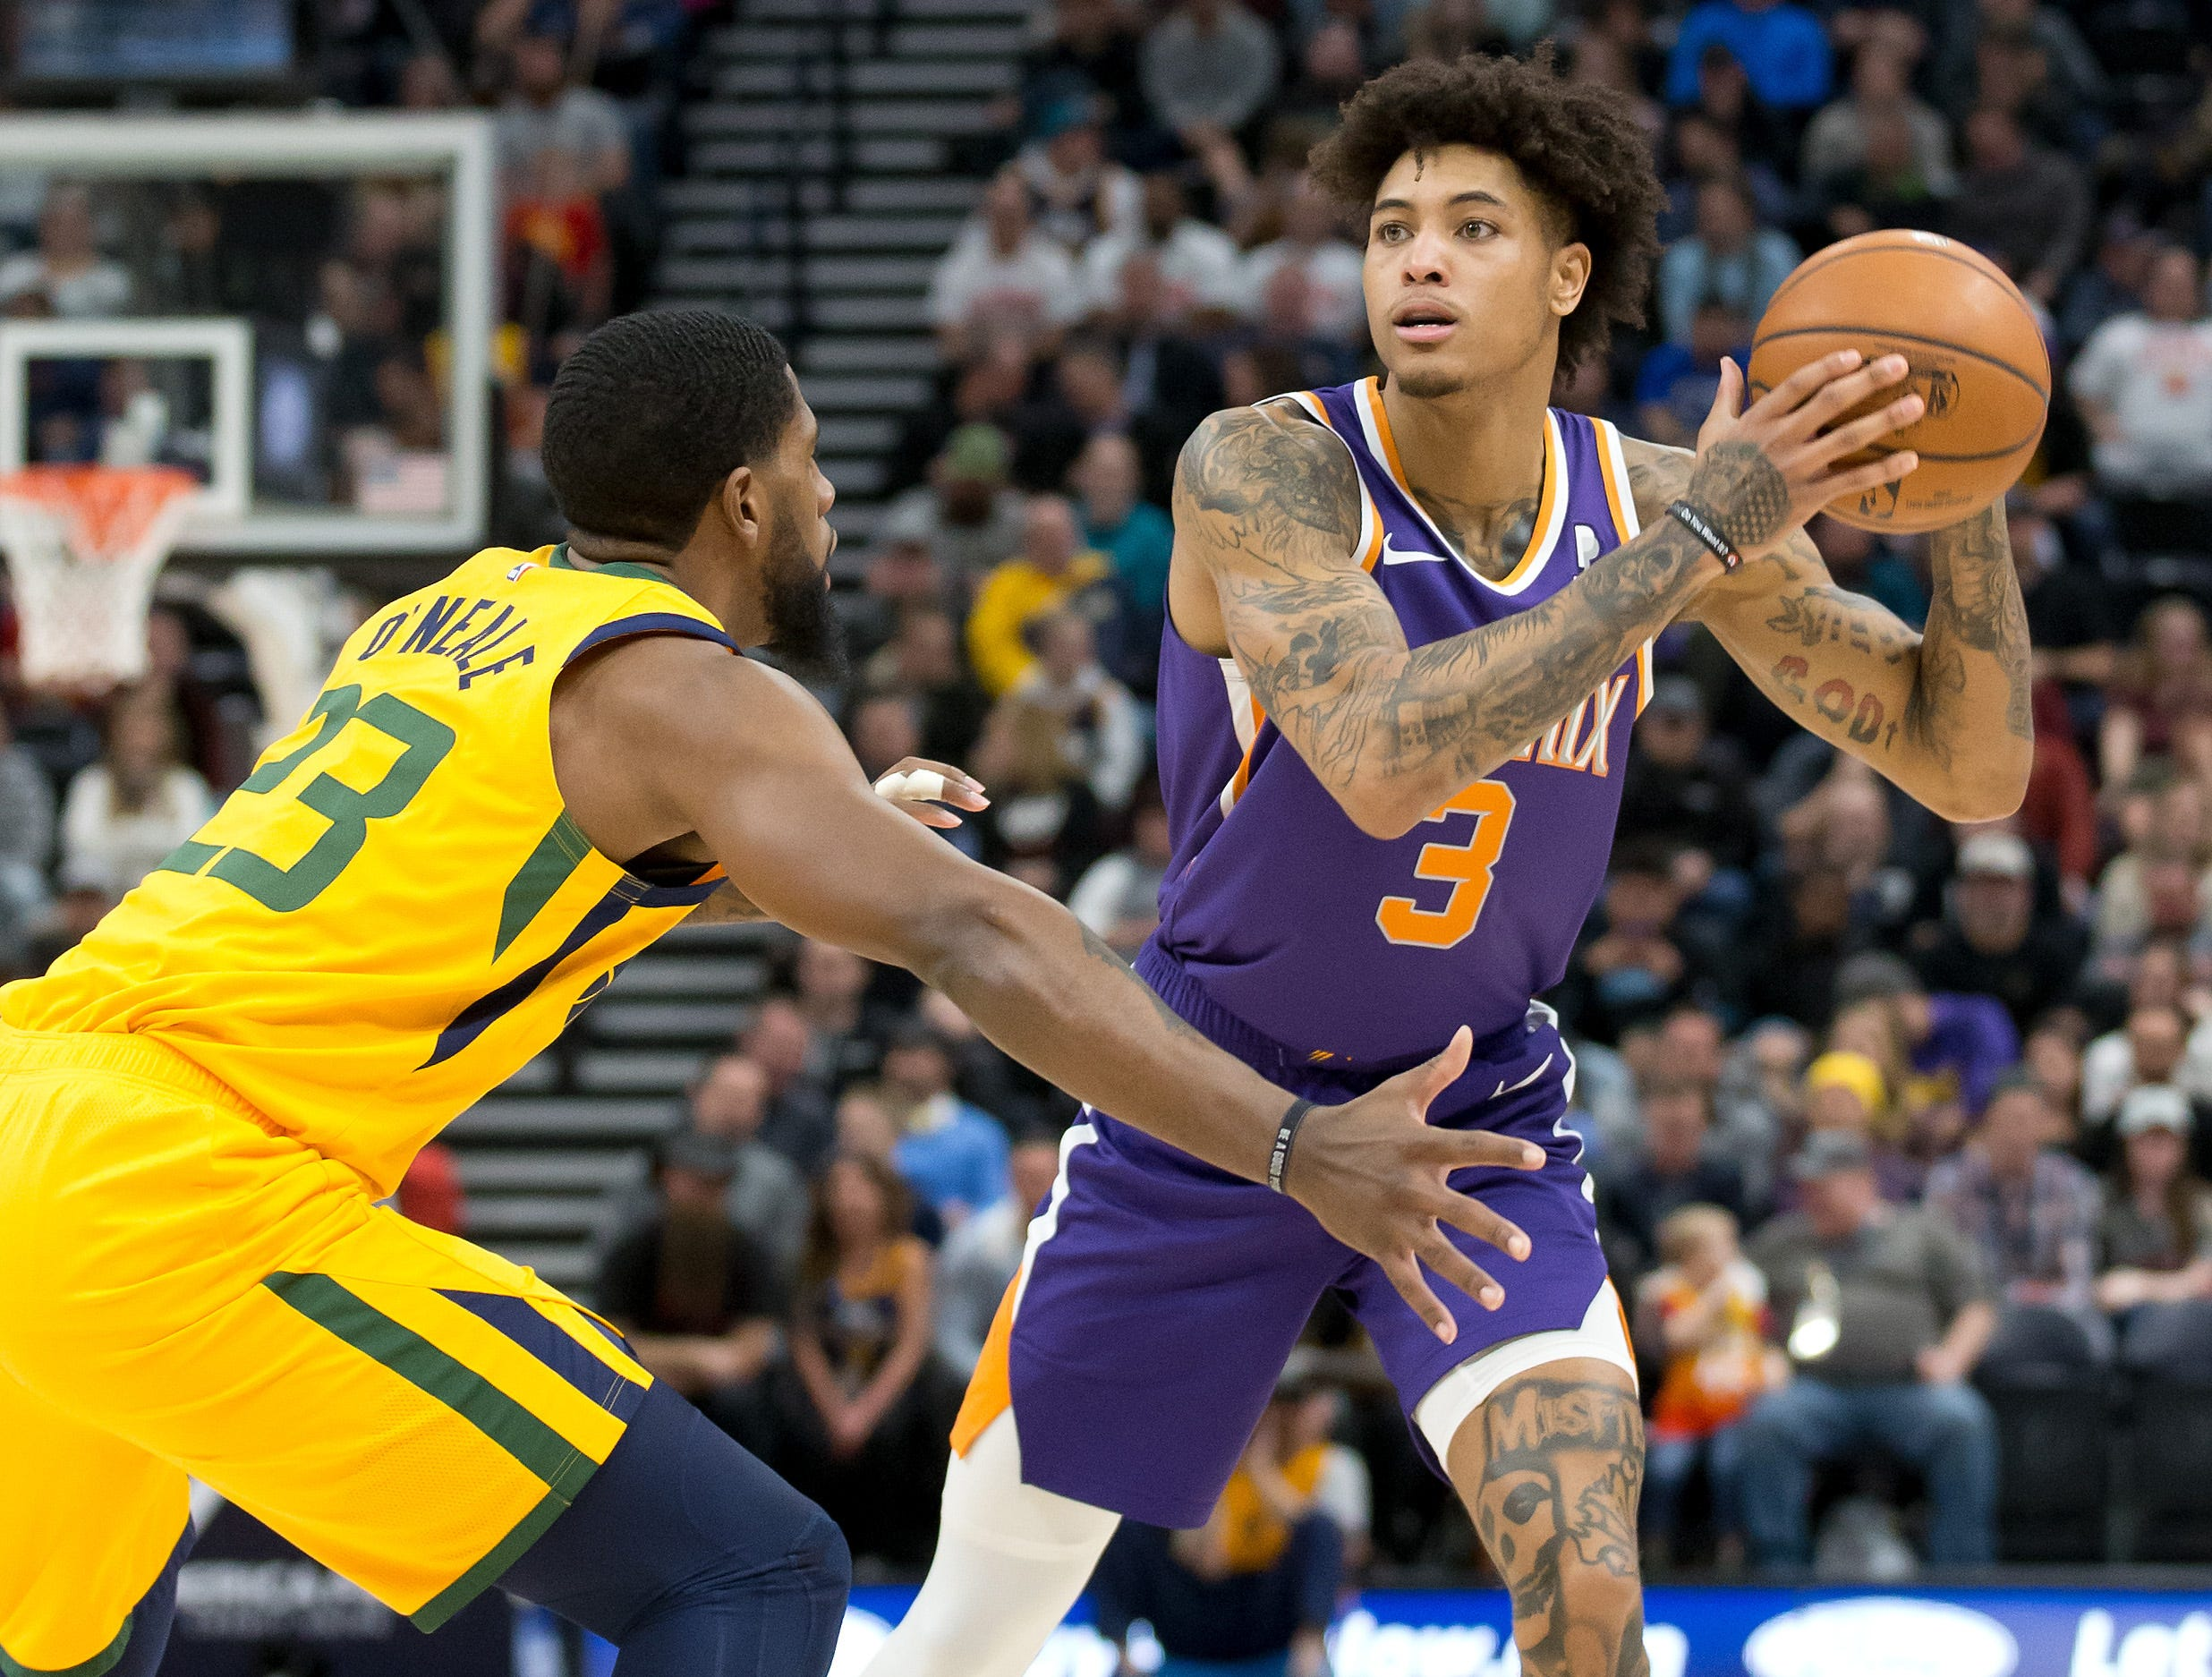 Feb 6, 2019; Salt Lake City, UT, USA; Phoenix Suns forward Kelly Oubre Jr. (3) looks to pass against Utah Jazz forward Royce O'Neale (23) during the first half at Vivint Smart Home Arena. Mandatory Credit: Russ Isabella-USA TODAY Sports